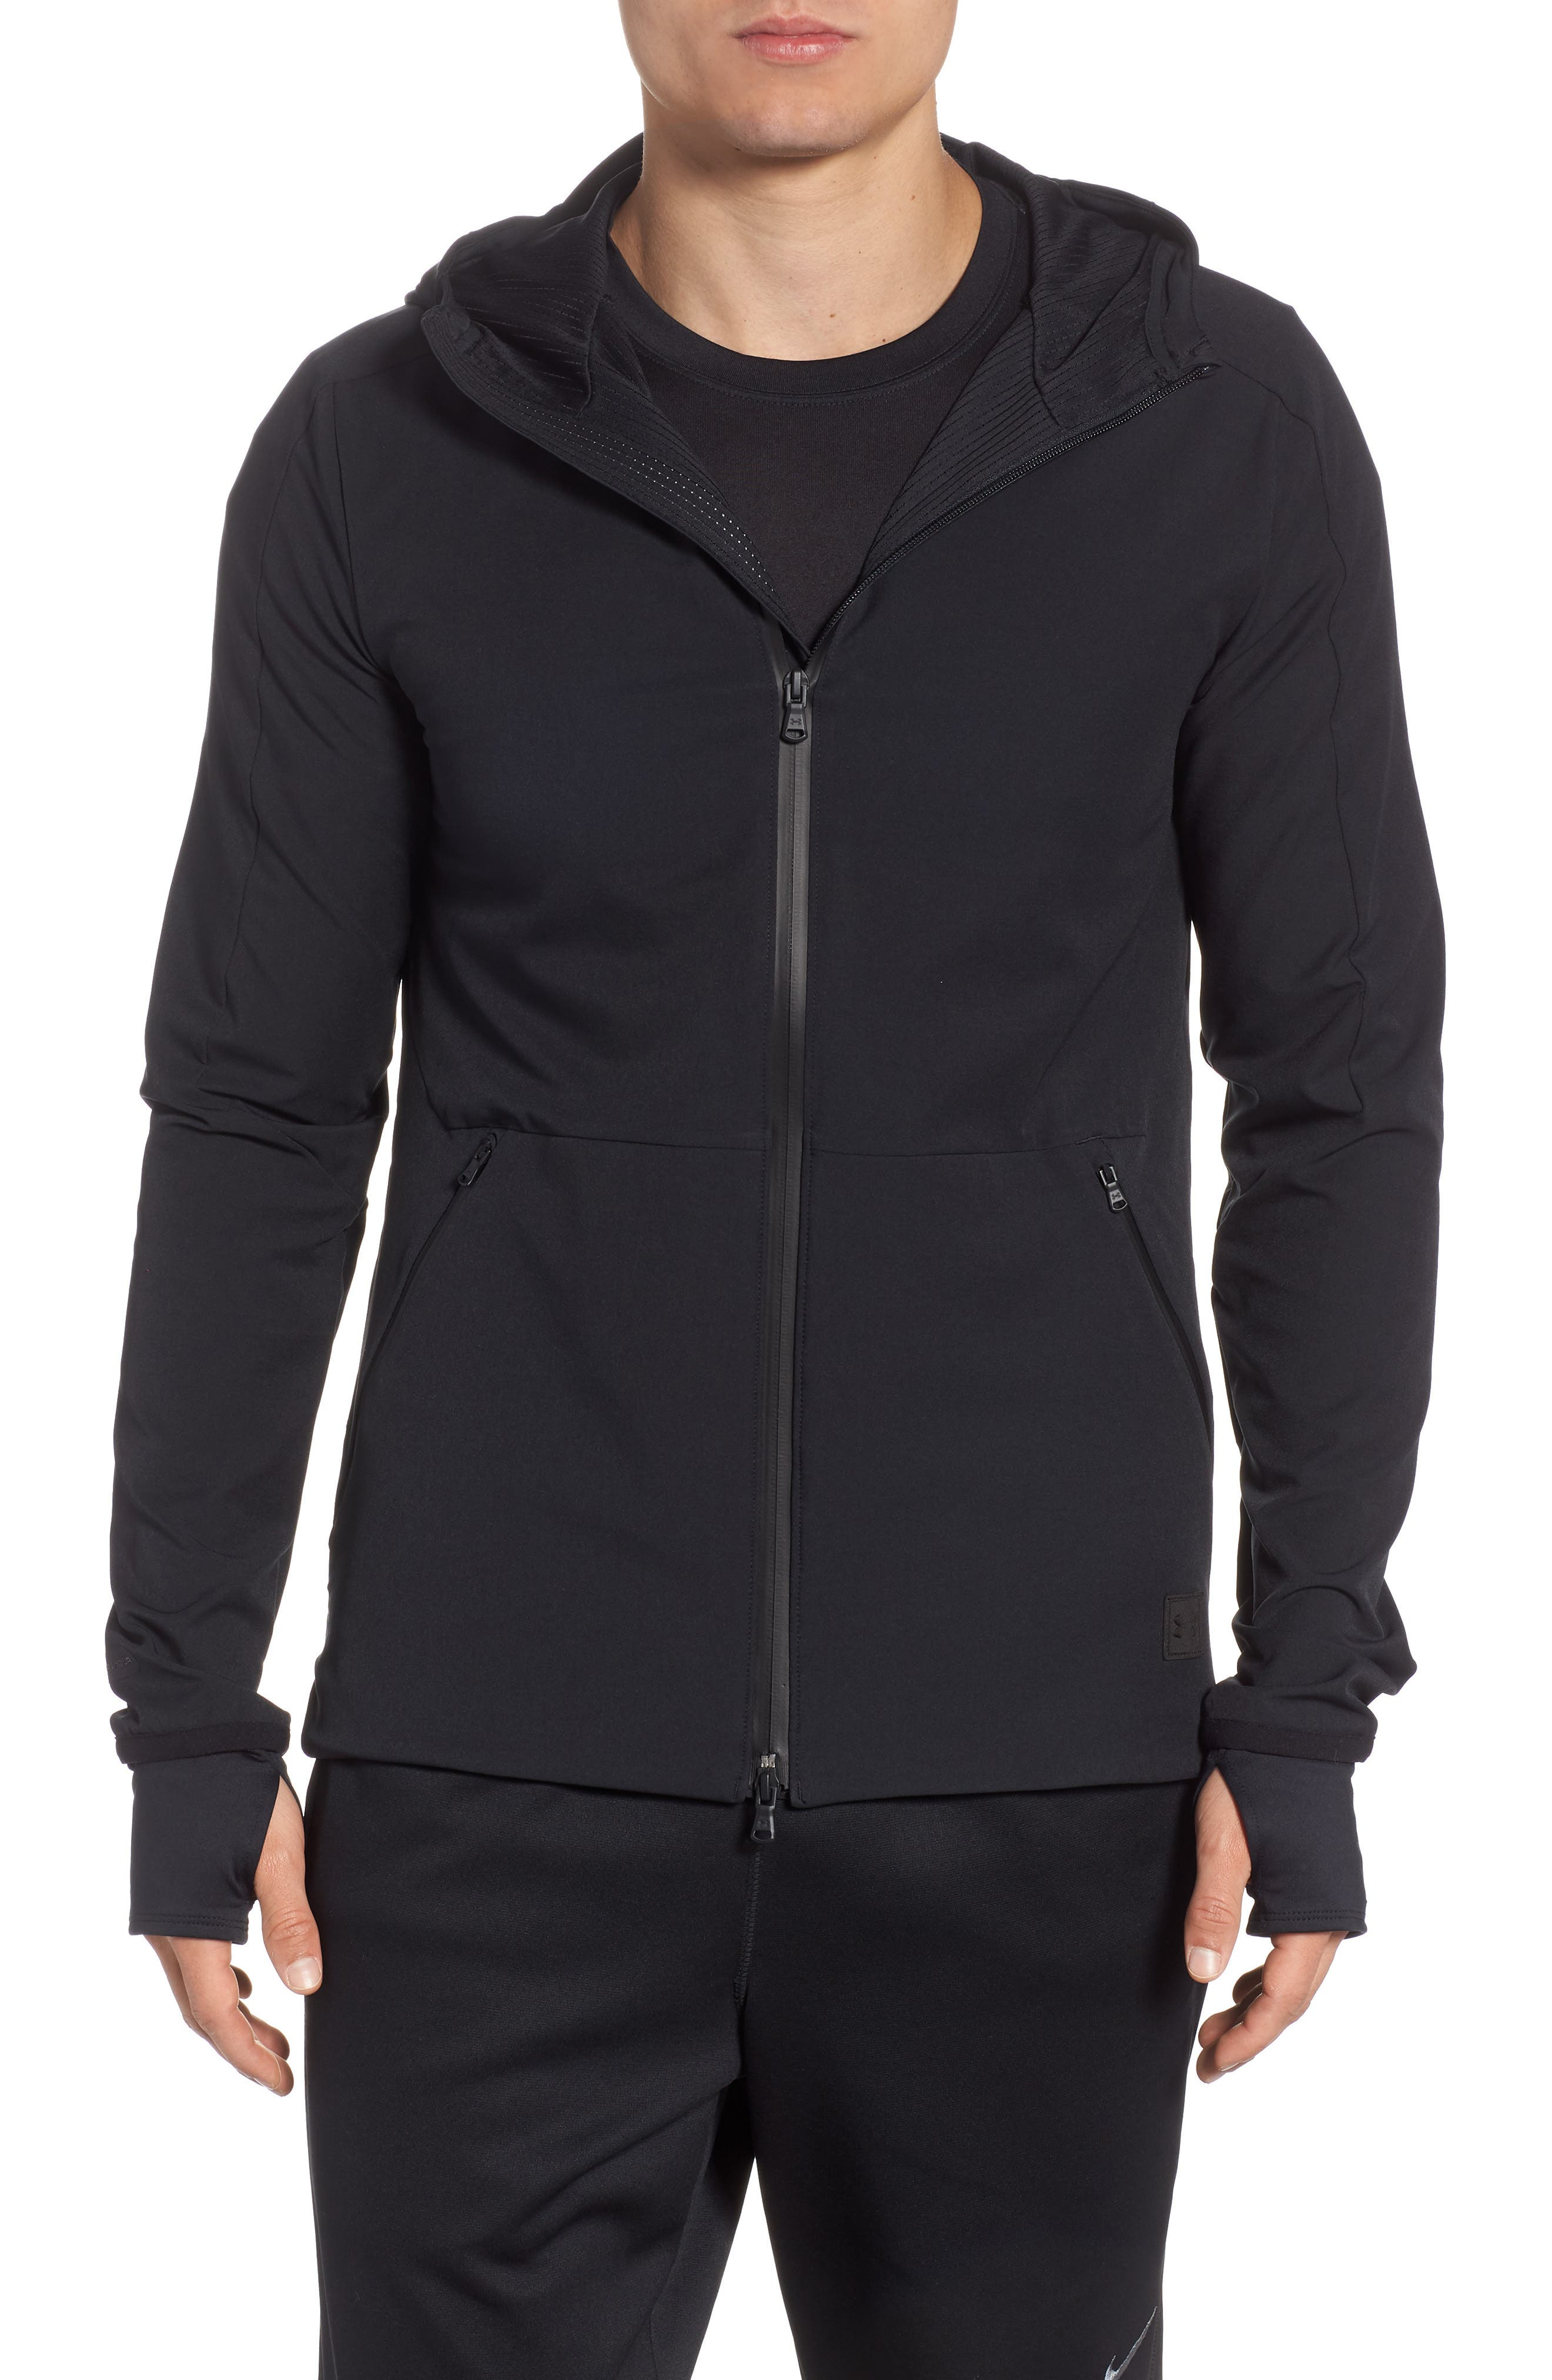 Perpetual Zip Jacket,                         Main,                         color, 001